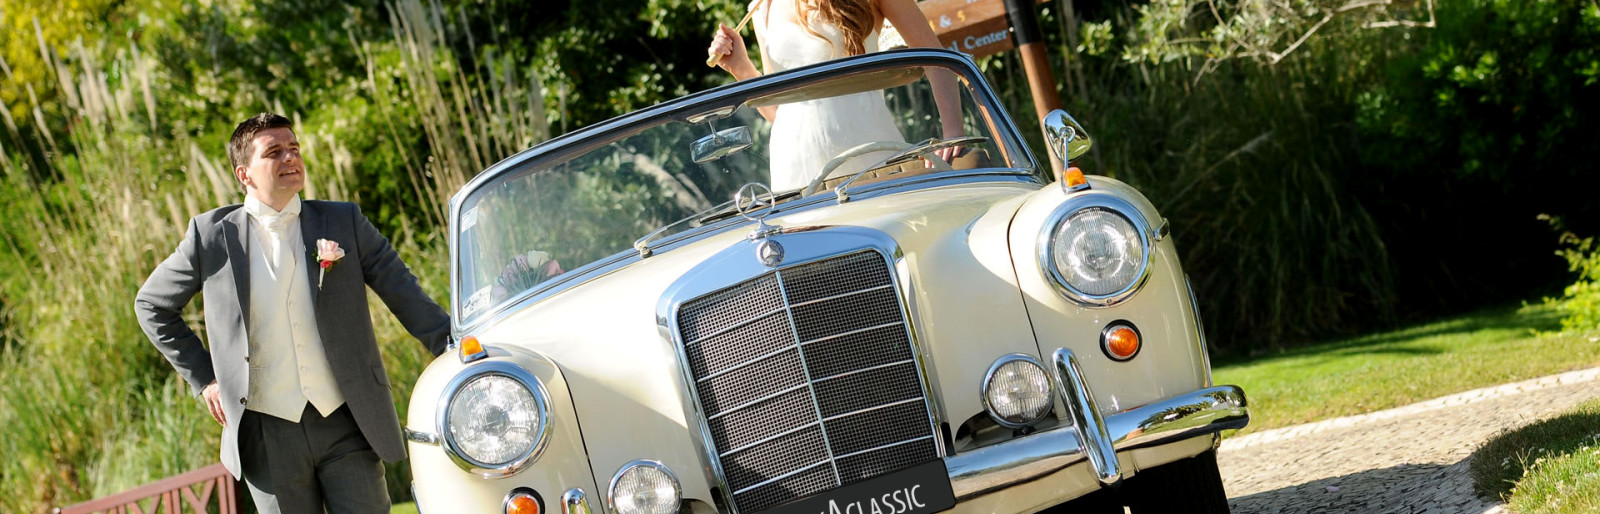 7 important tips for hiring a classic or vintage car for your wedding